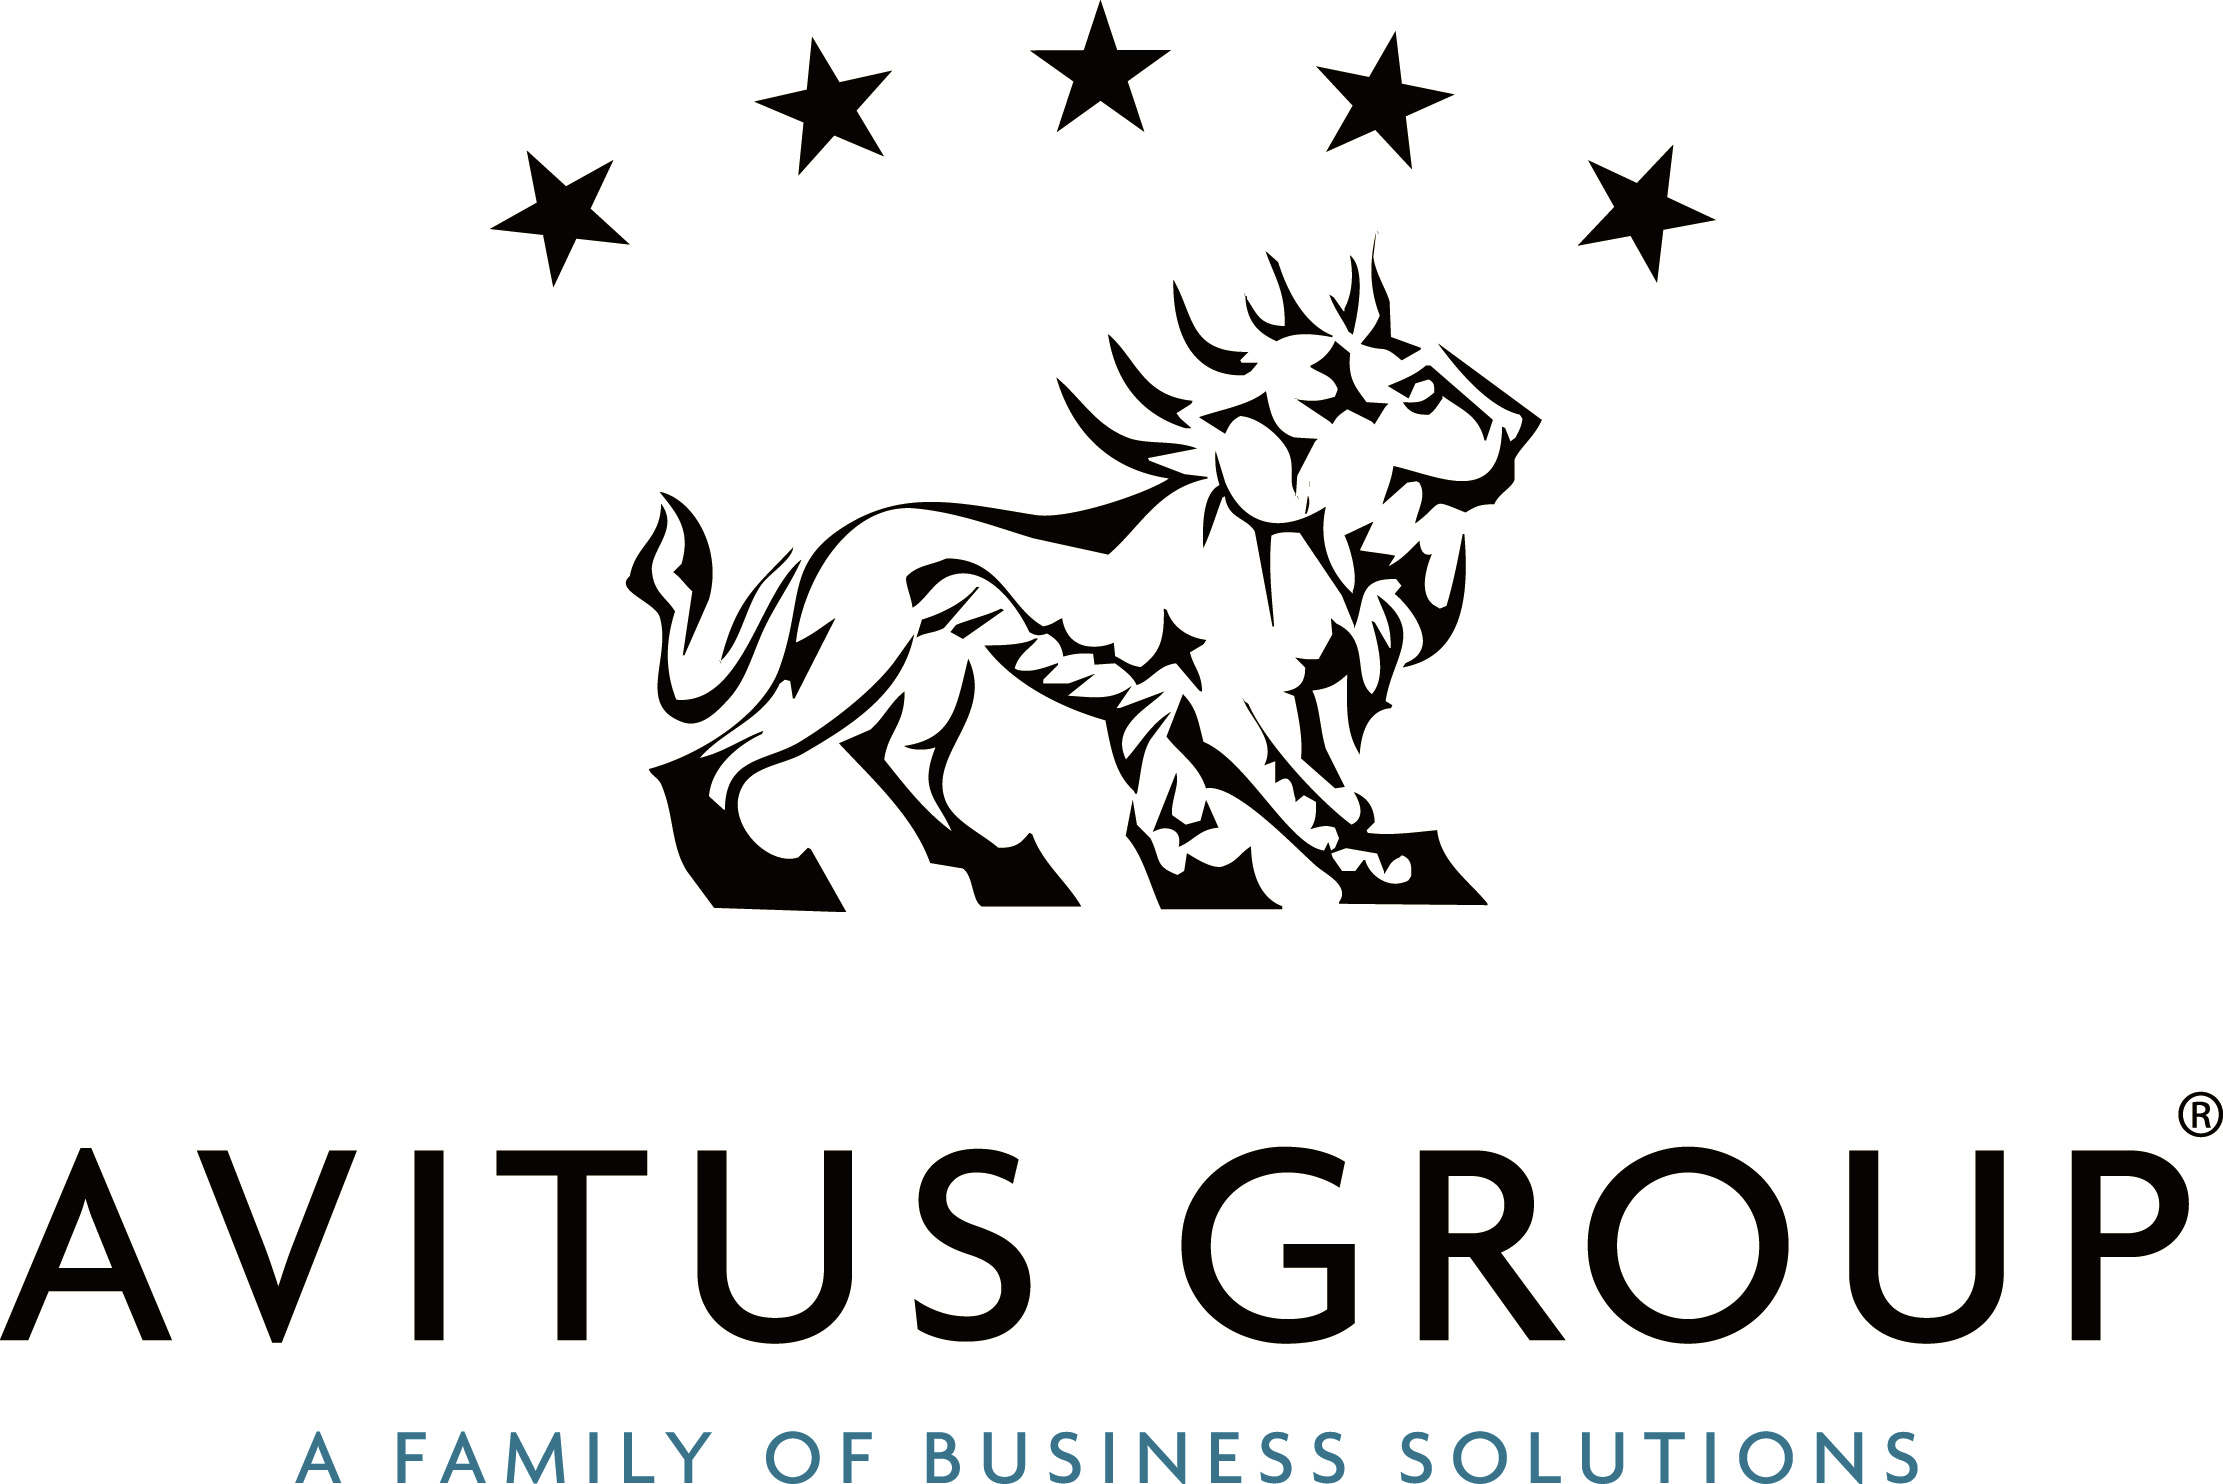 Avitus Group